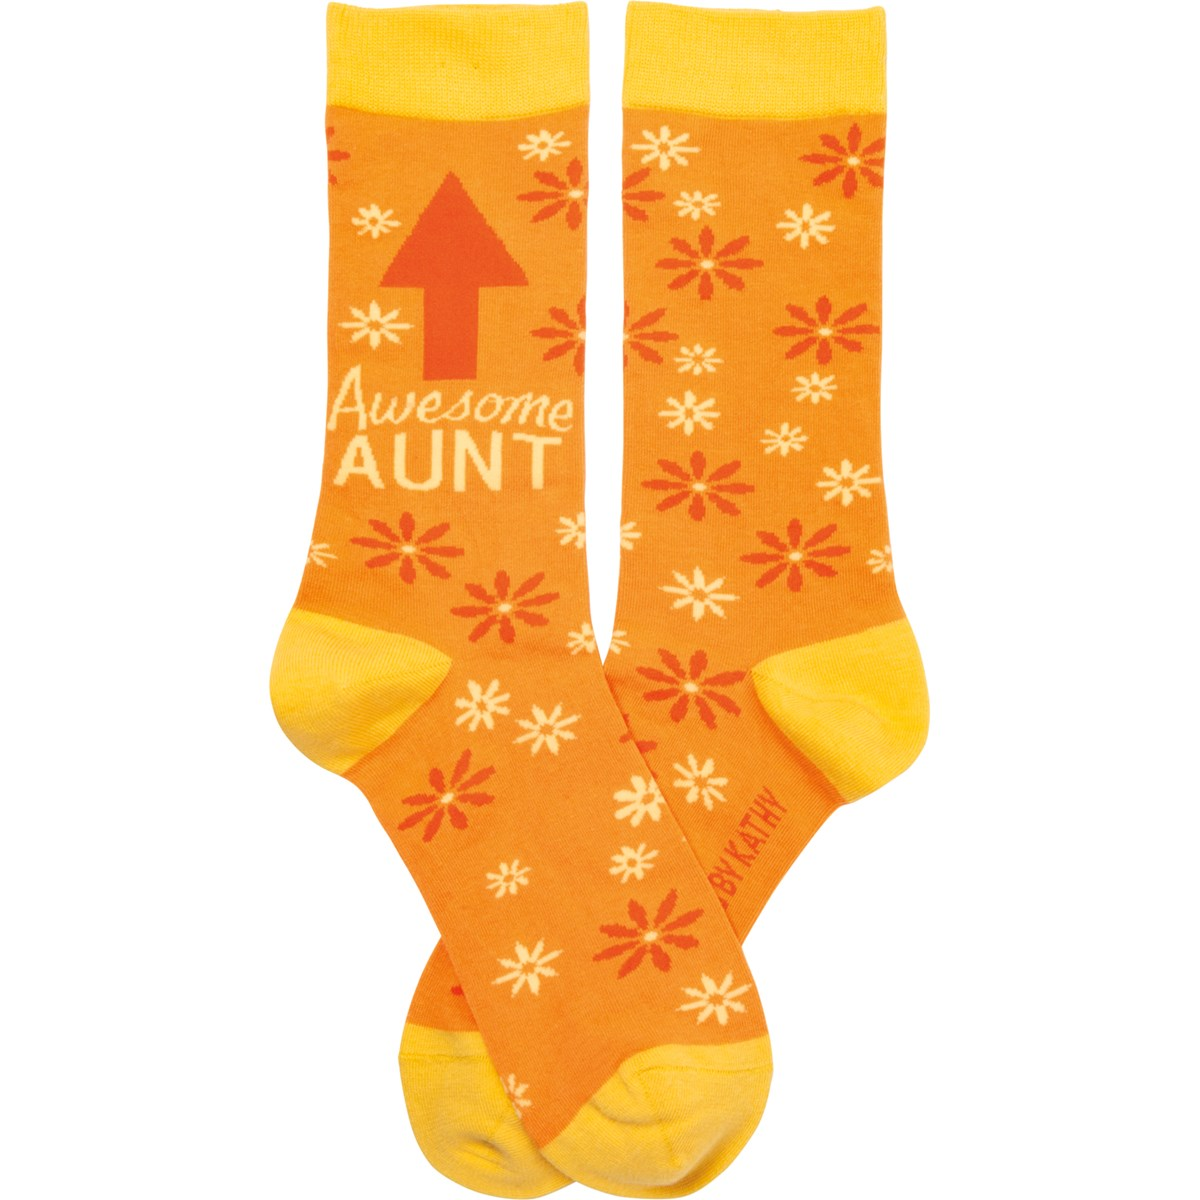 Socks - Awesome Aunt